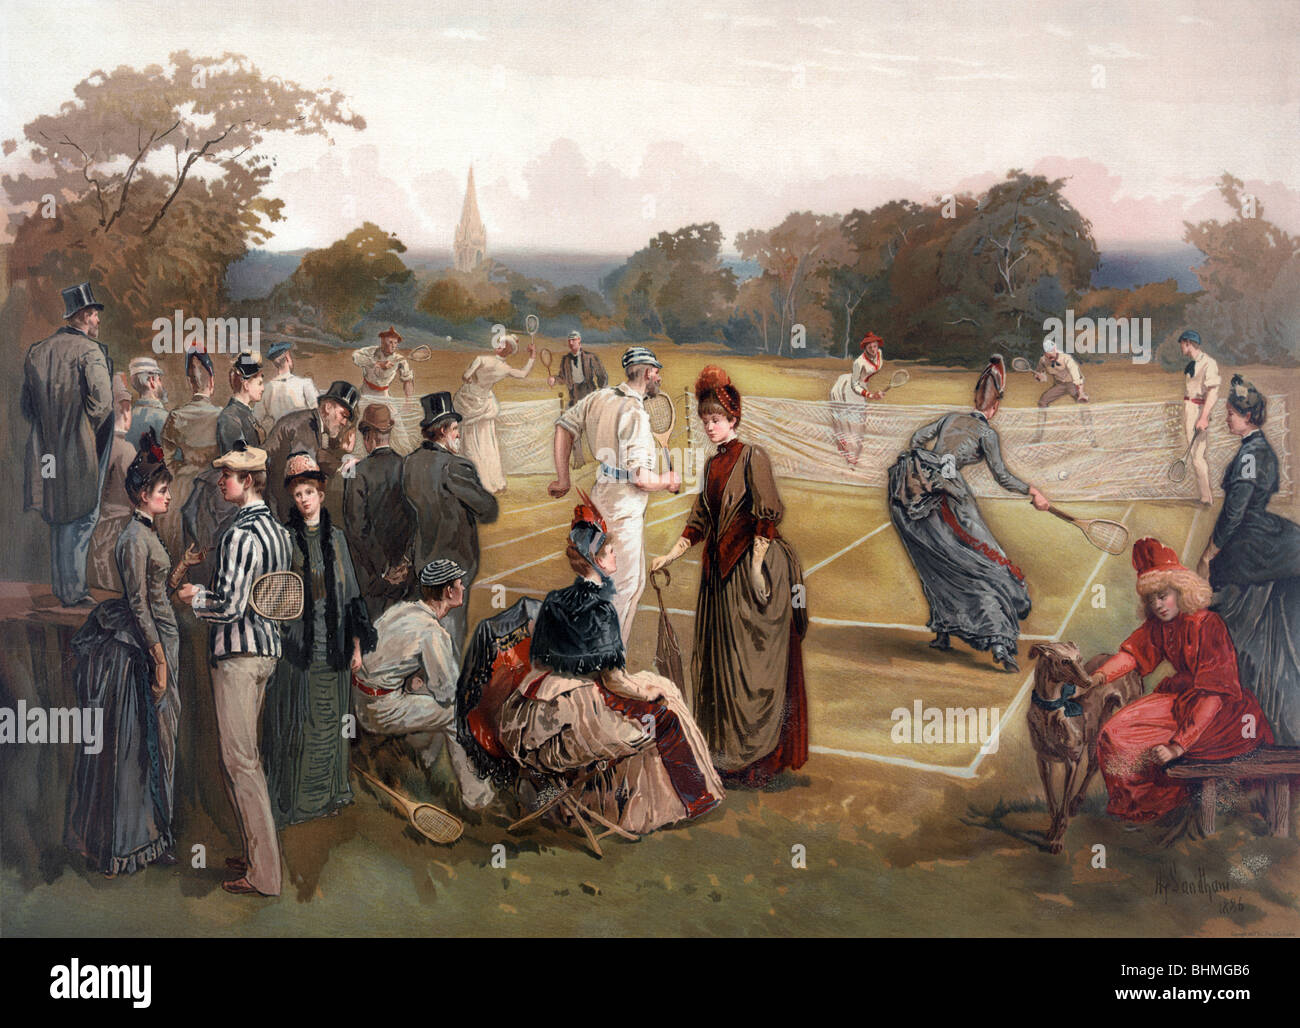 Vintage colour print c1887 depicting an early game of lawn tennis in the United States of America. - Stock Image